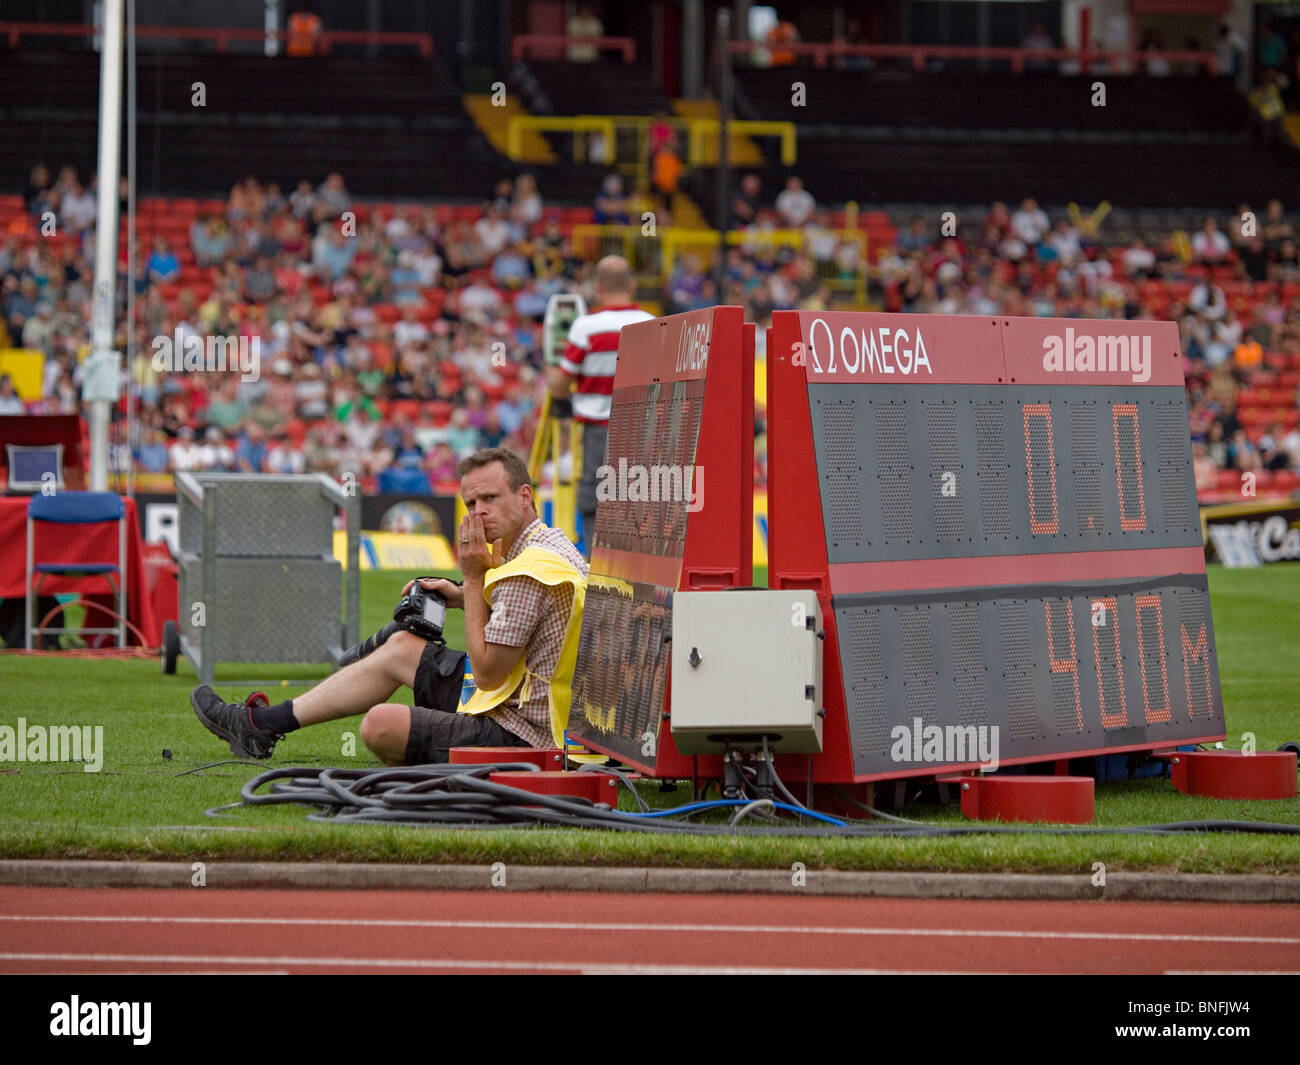 A photographer at work at the IAAF Diamond League in Gateshead - Stock Image